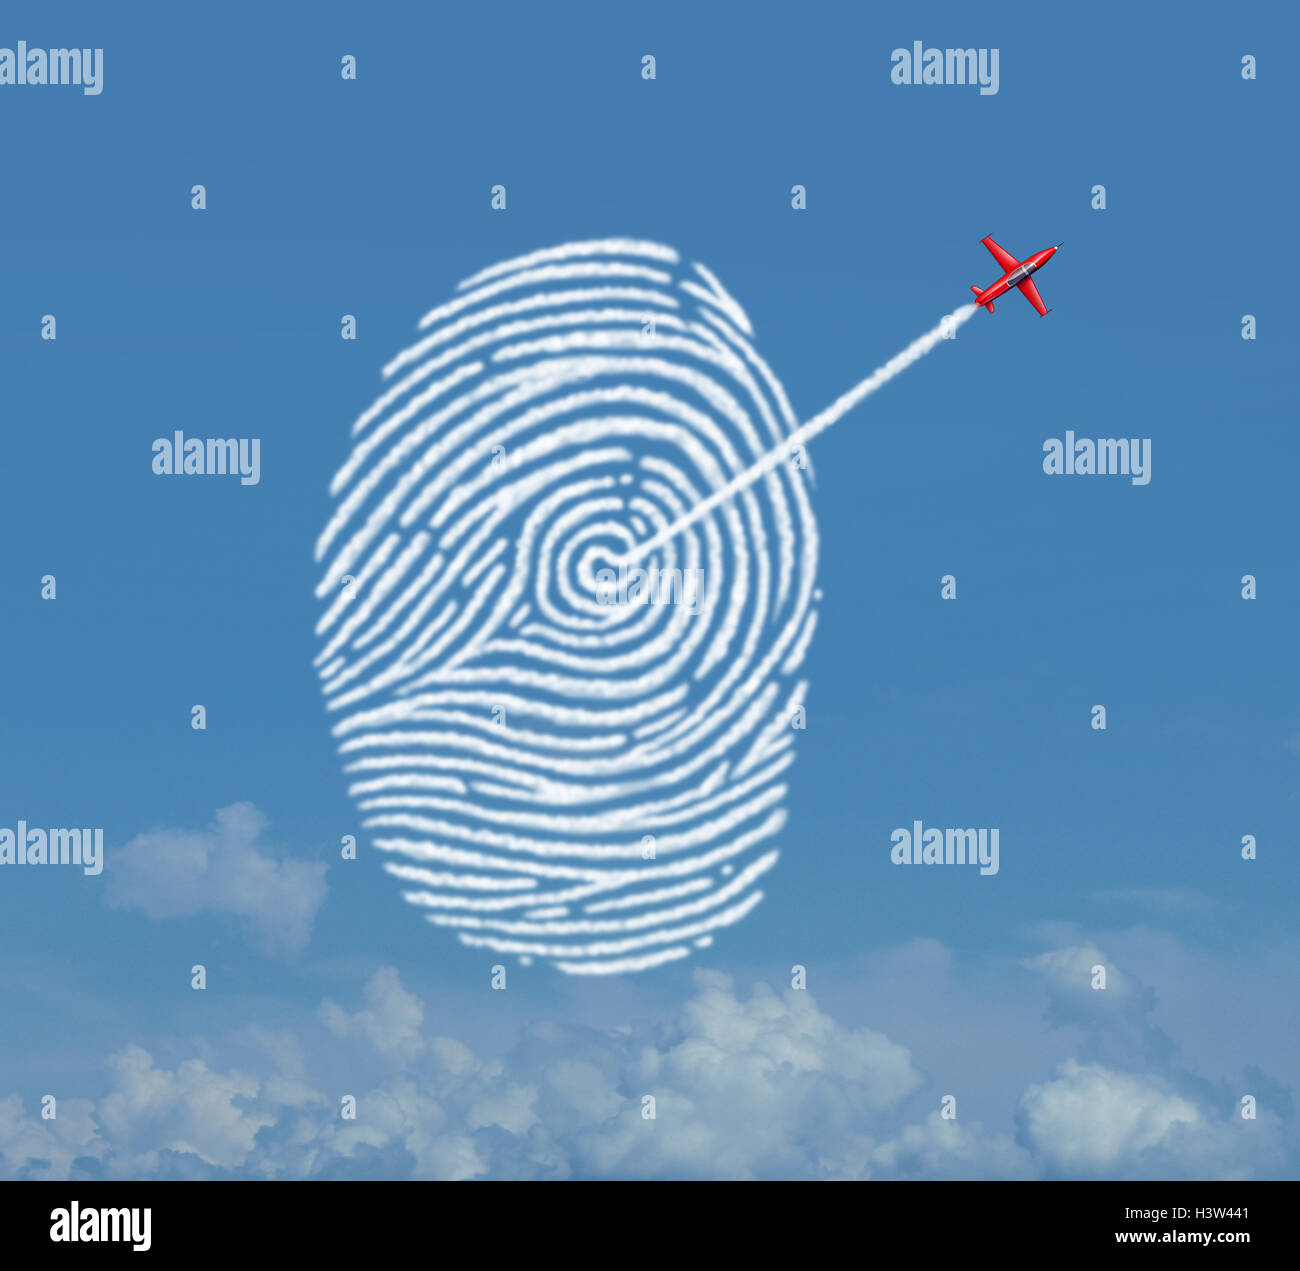 Identity security concept as an acrobatic jet airplane making a smoke trail shaped as a fingerprint or thumbprint - Stock Image